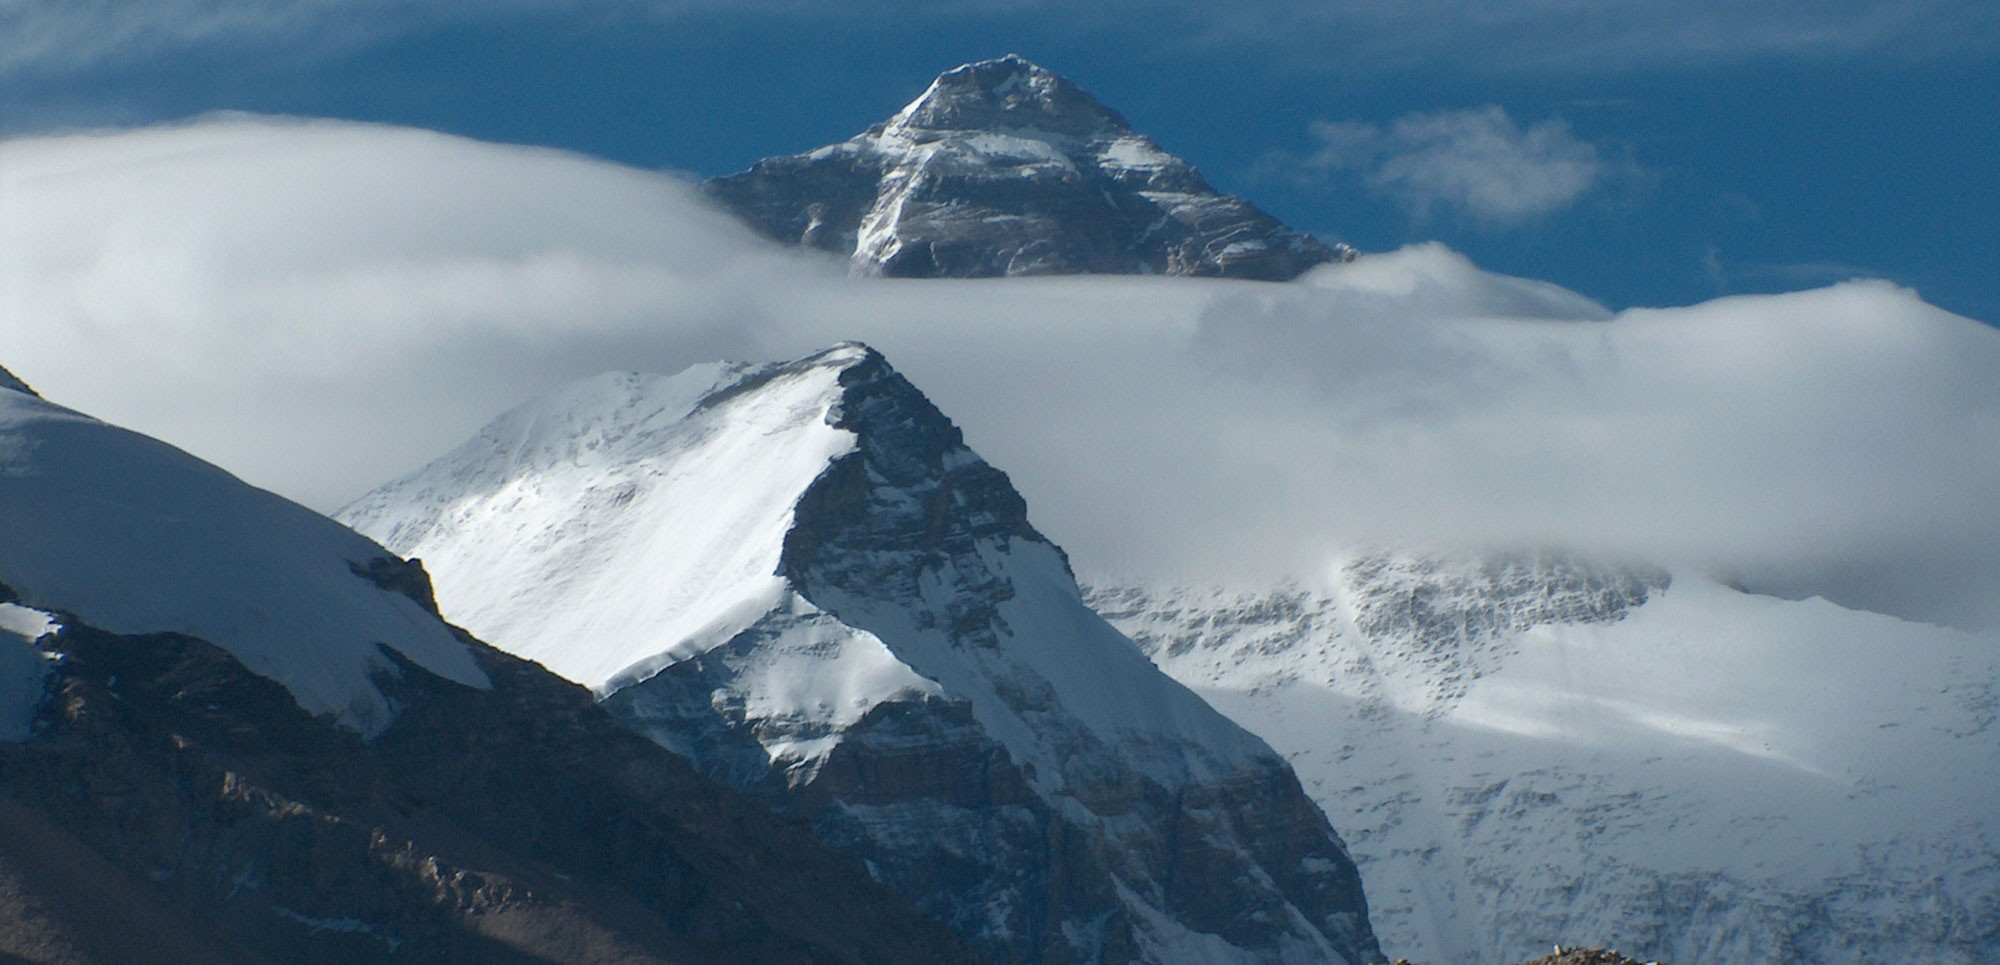 Mount Everest seen on the approach via jeep in Tibet